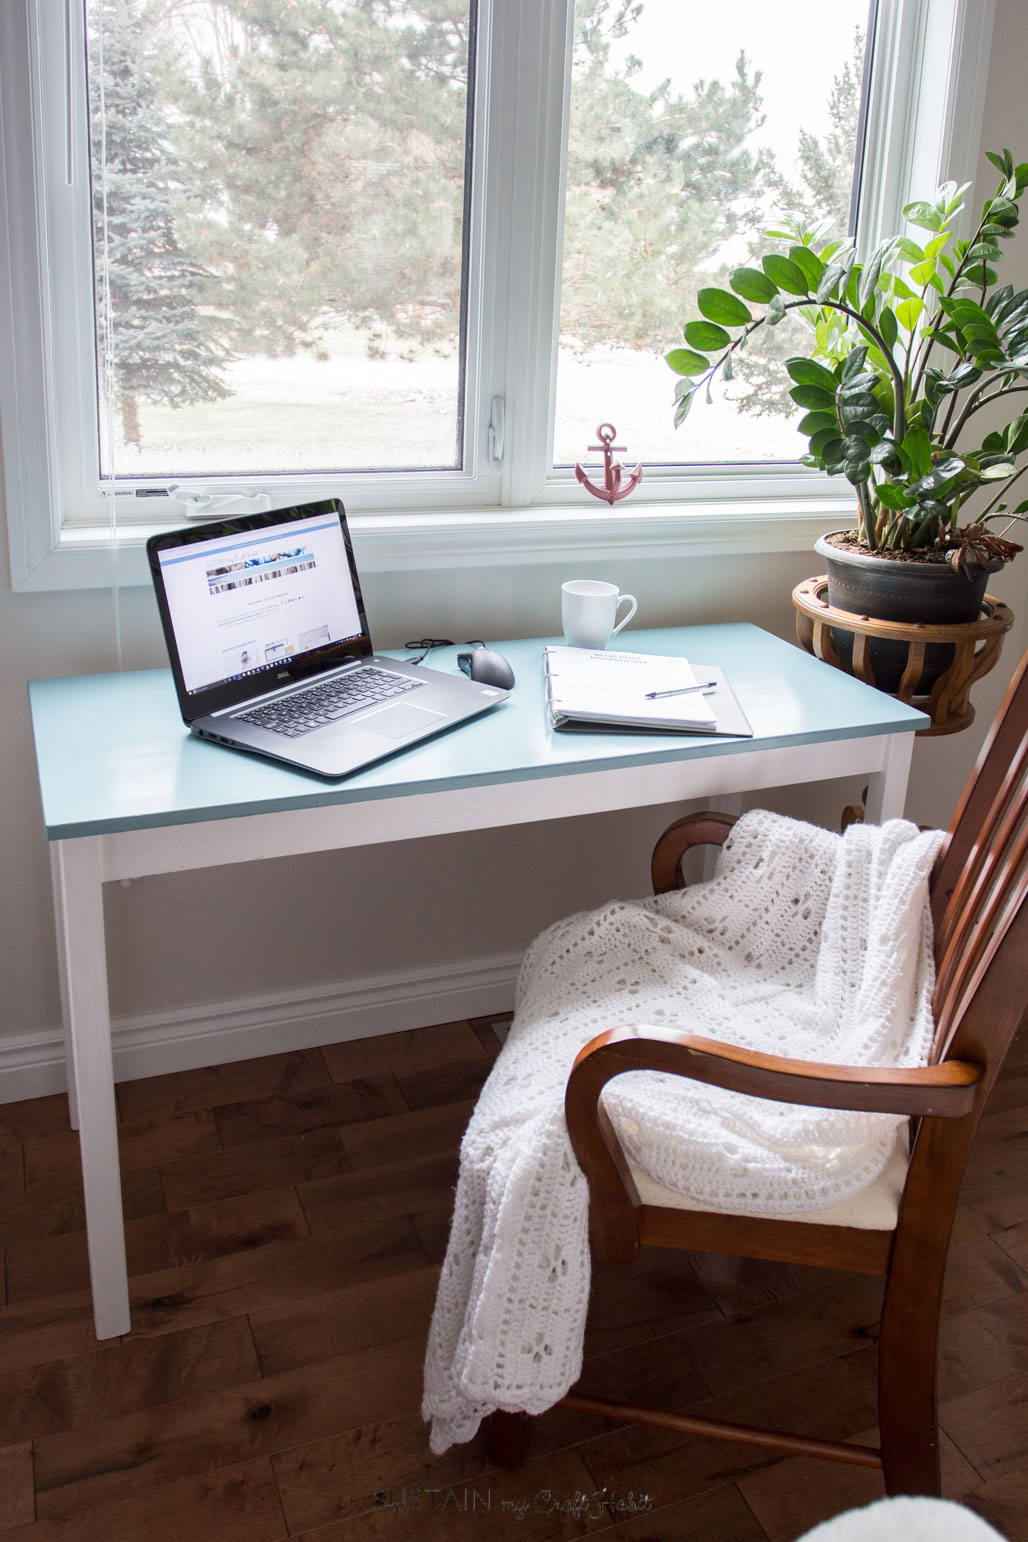 A little paint gives new life to an old wooden table and inspires a fresh and cozy office nook. Full tutorial on painting yellowing furniture.